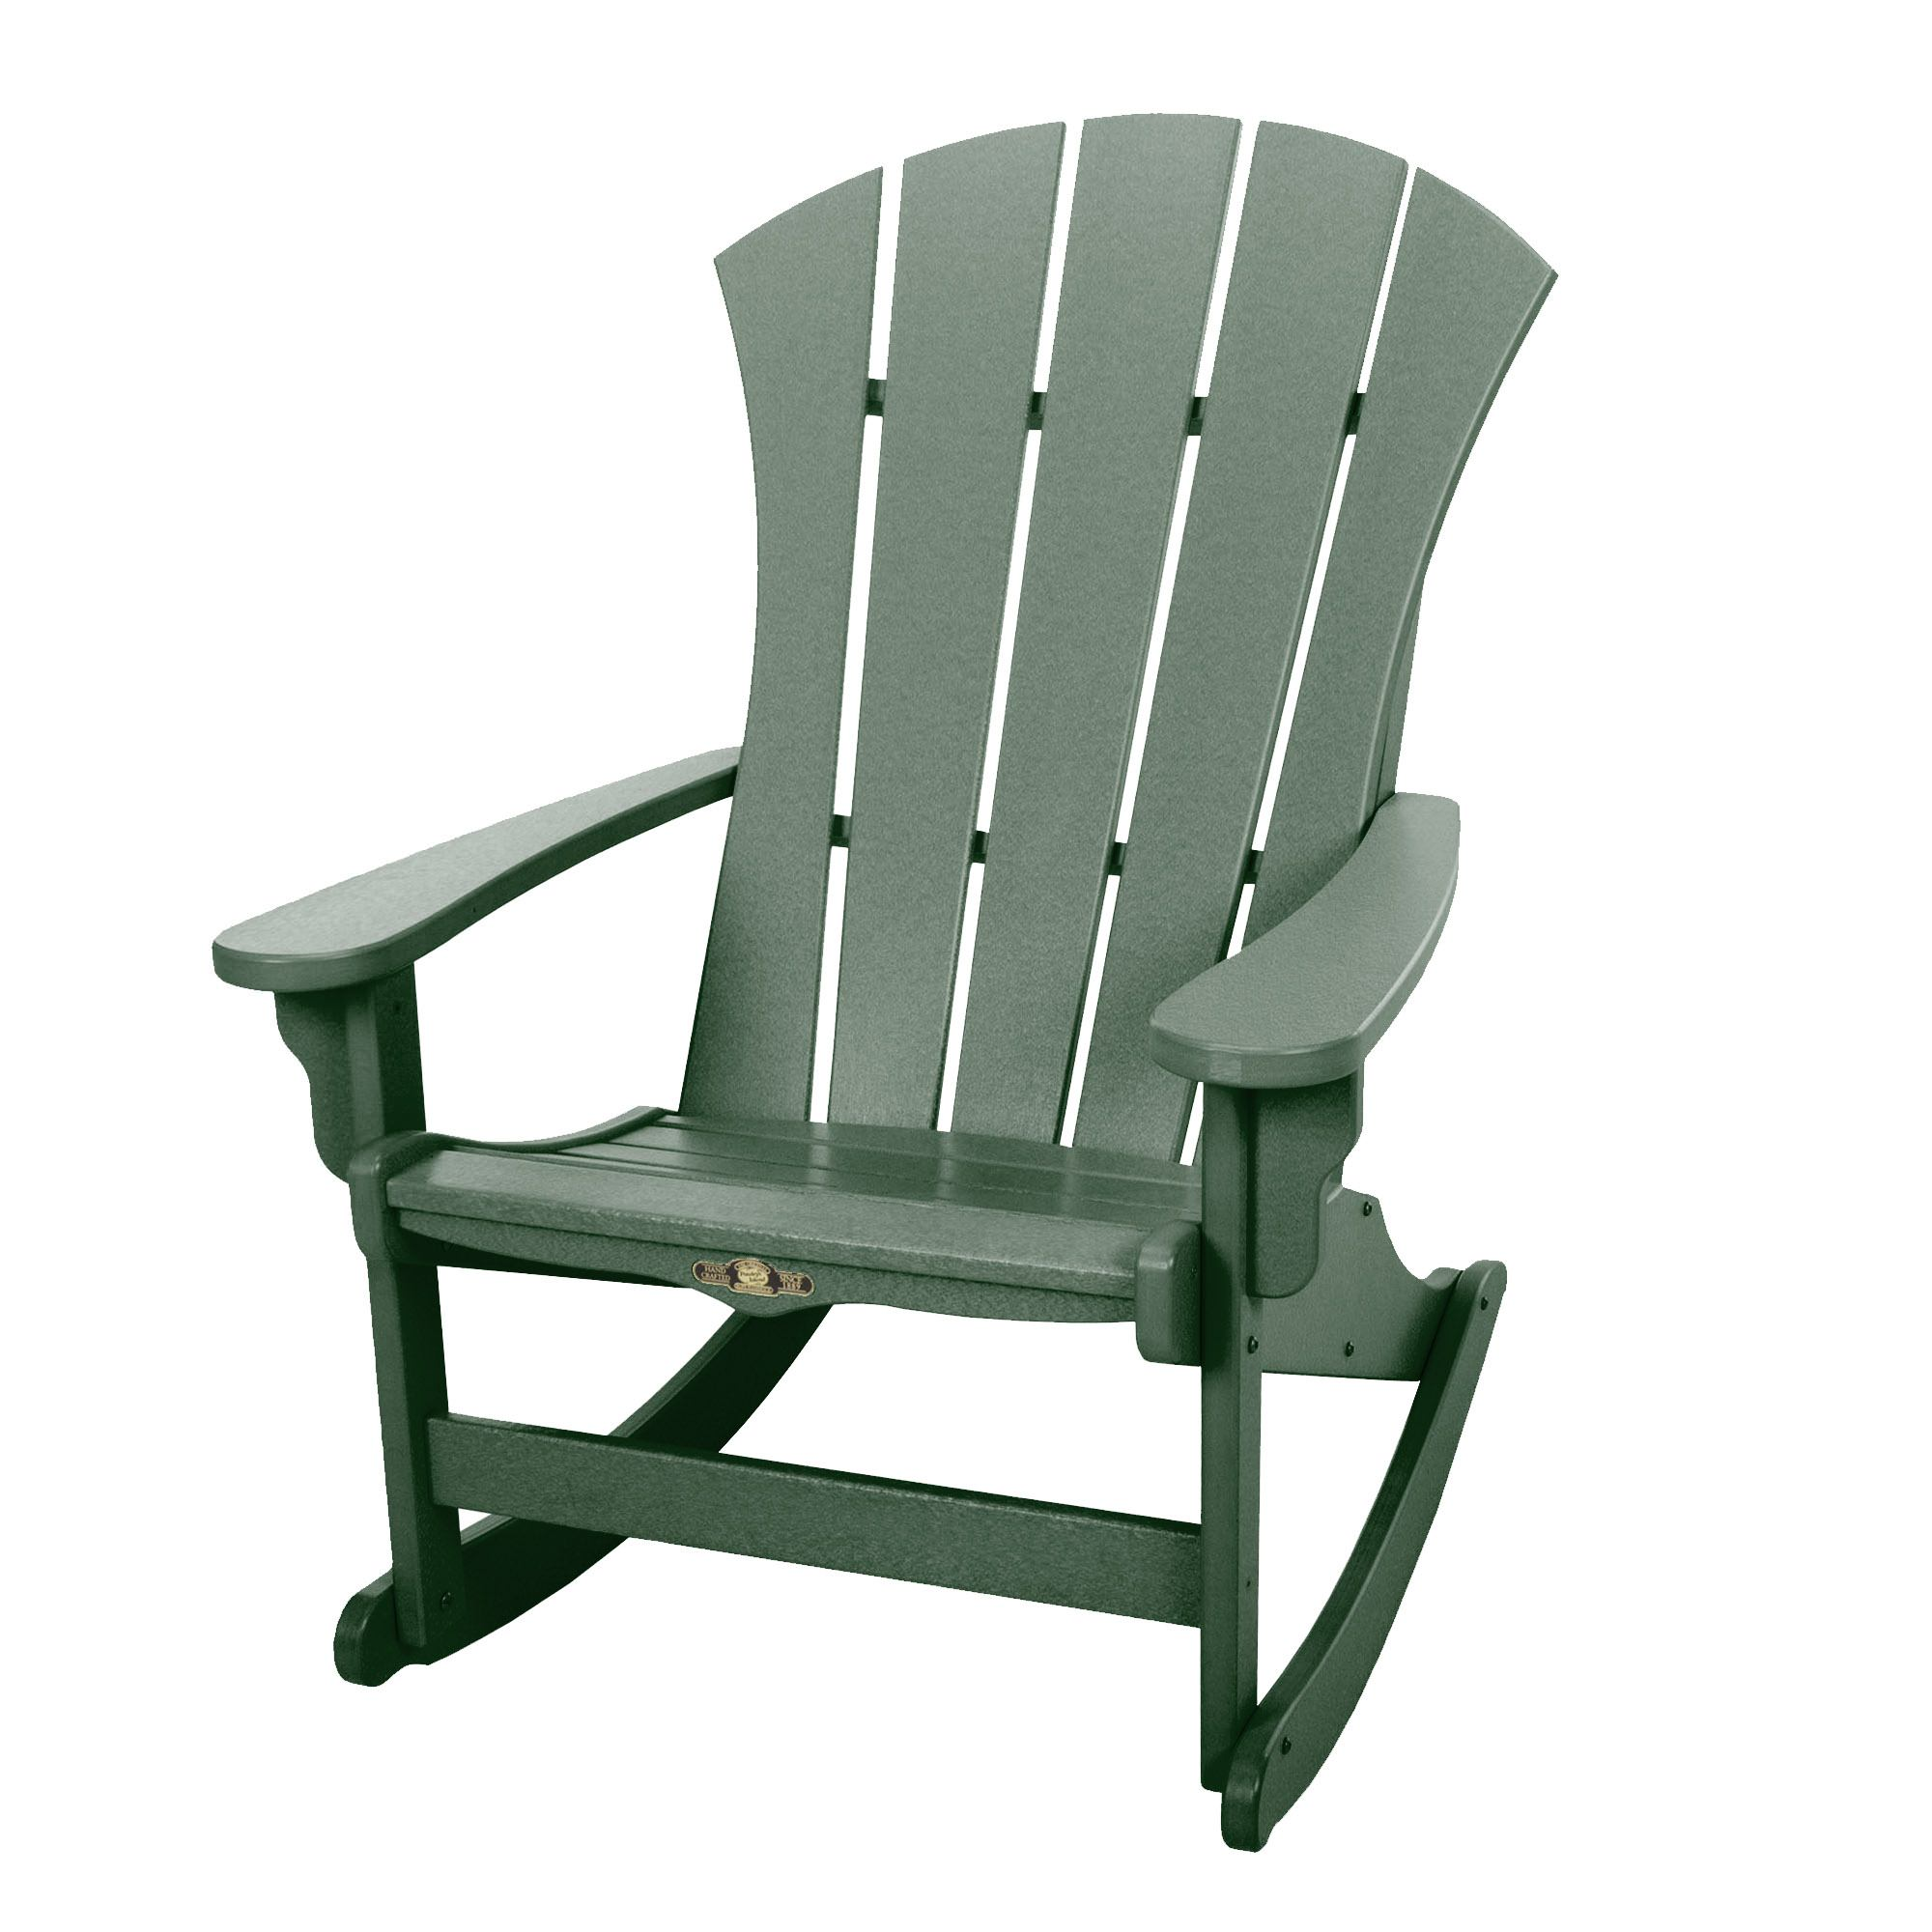 shop durawood sunrise adirondack rockers on sale. Black Bedroom Furniture Sets. Home Design Ideas